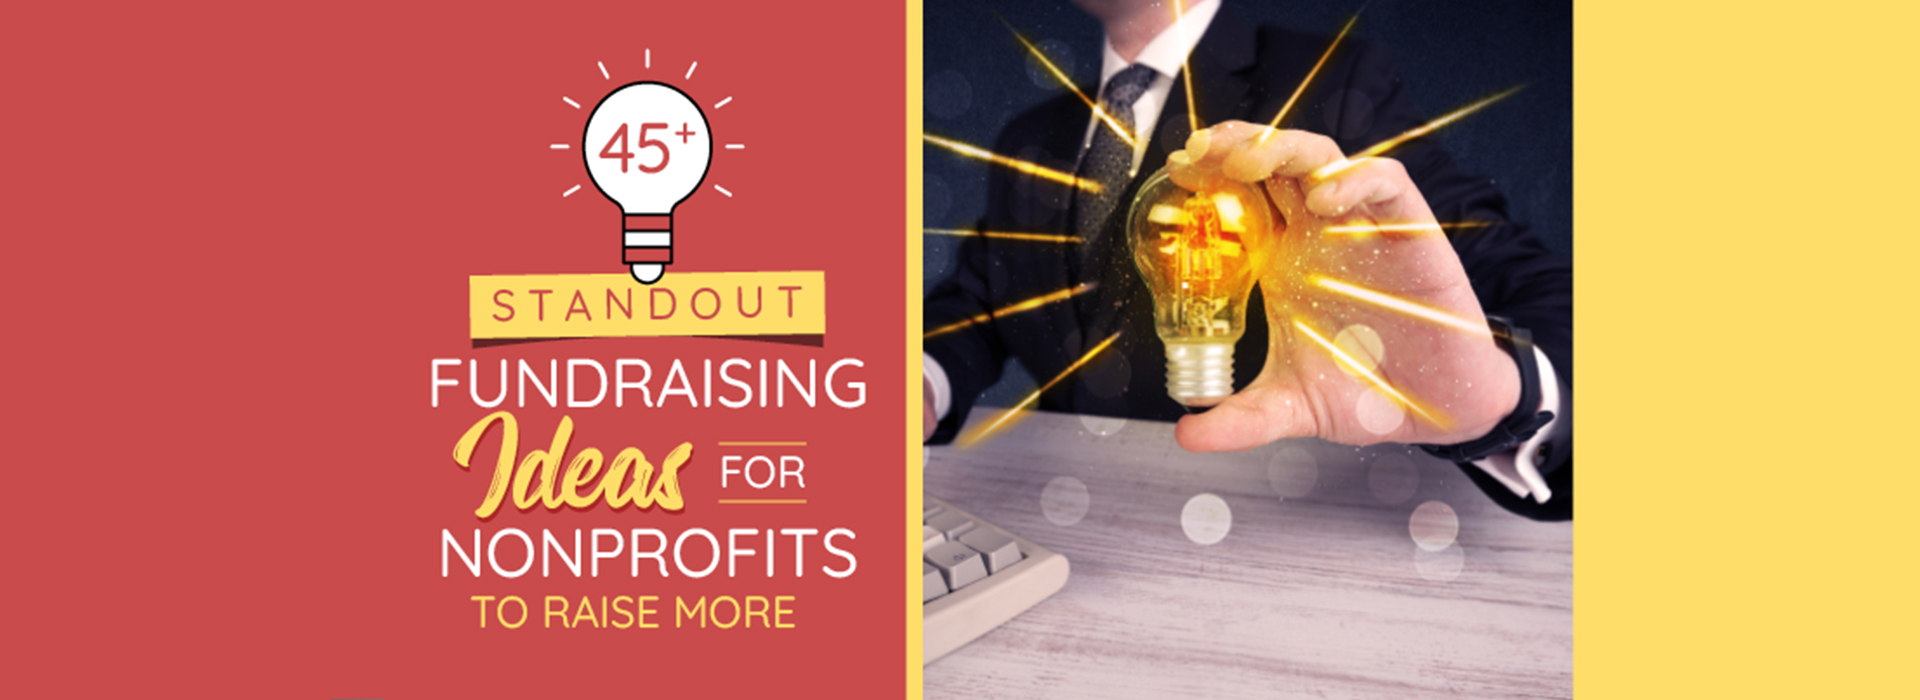 Check out this comprehensive list of fundraisers your nonprofit can use to raise more.